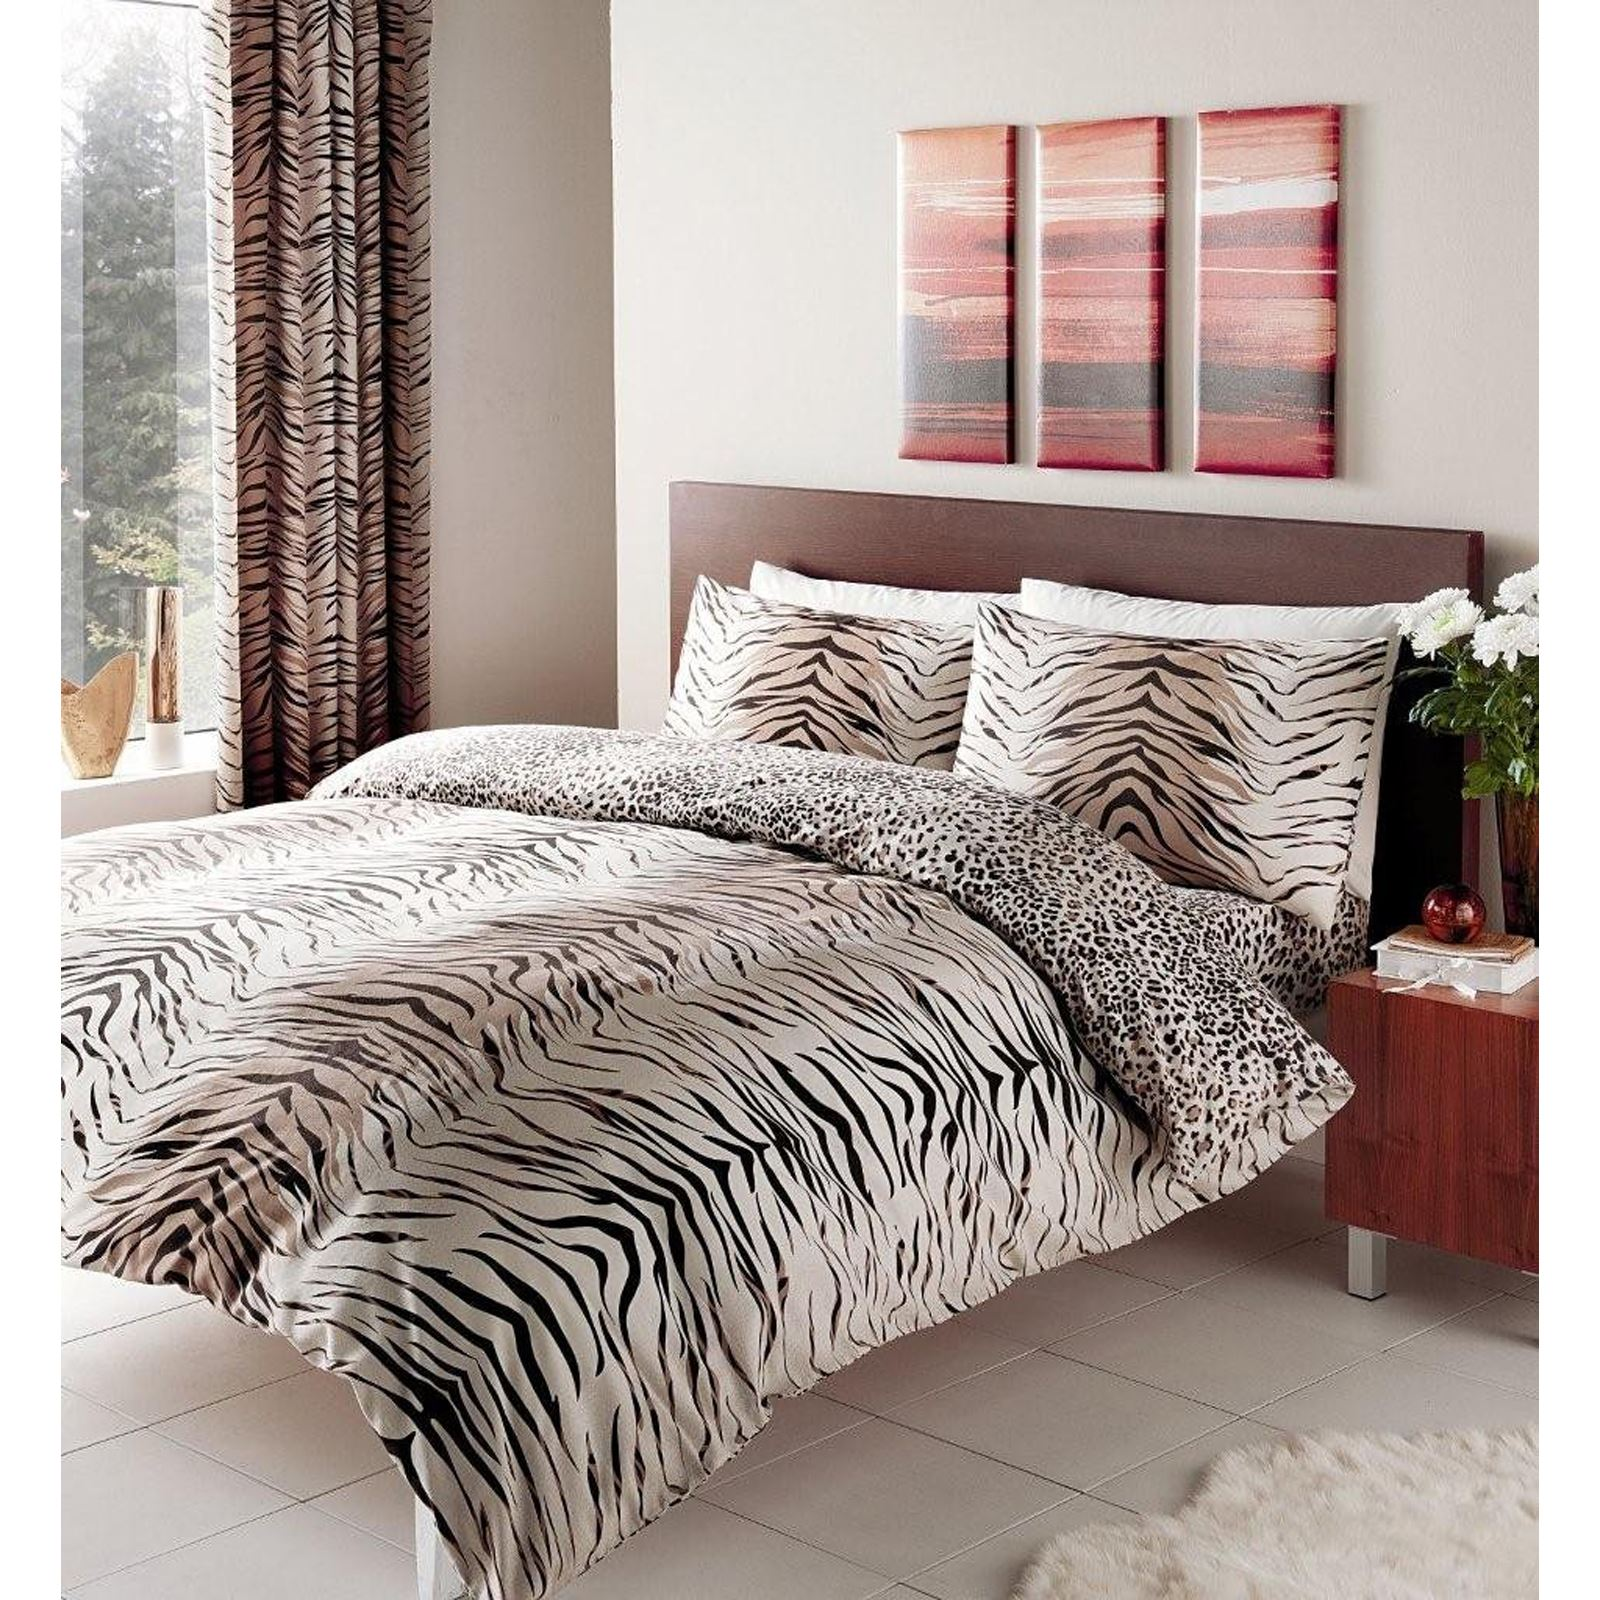 tiger leoparden druck reversible bettw sche sets in einzel doppel king size ebay. Black Bedroom Furniture Sets. Home Design Ideas